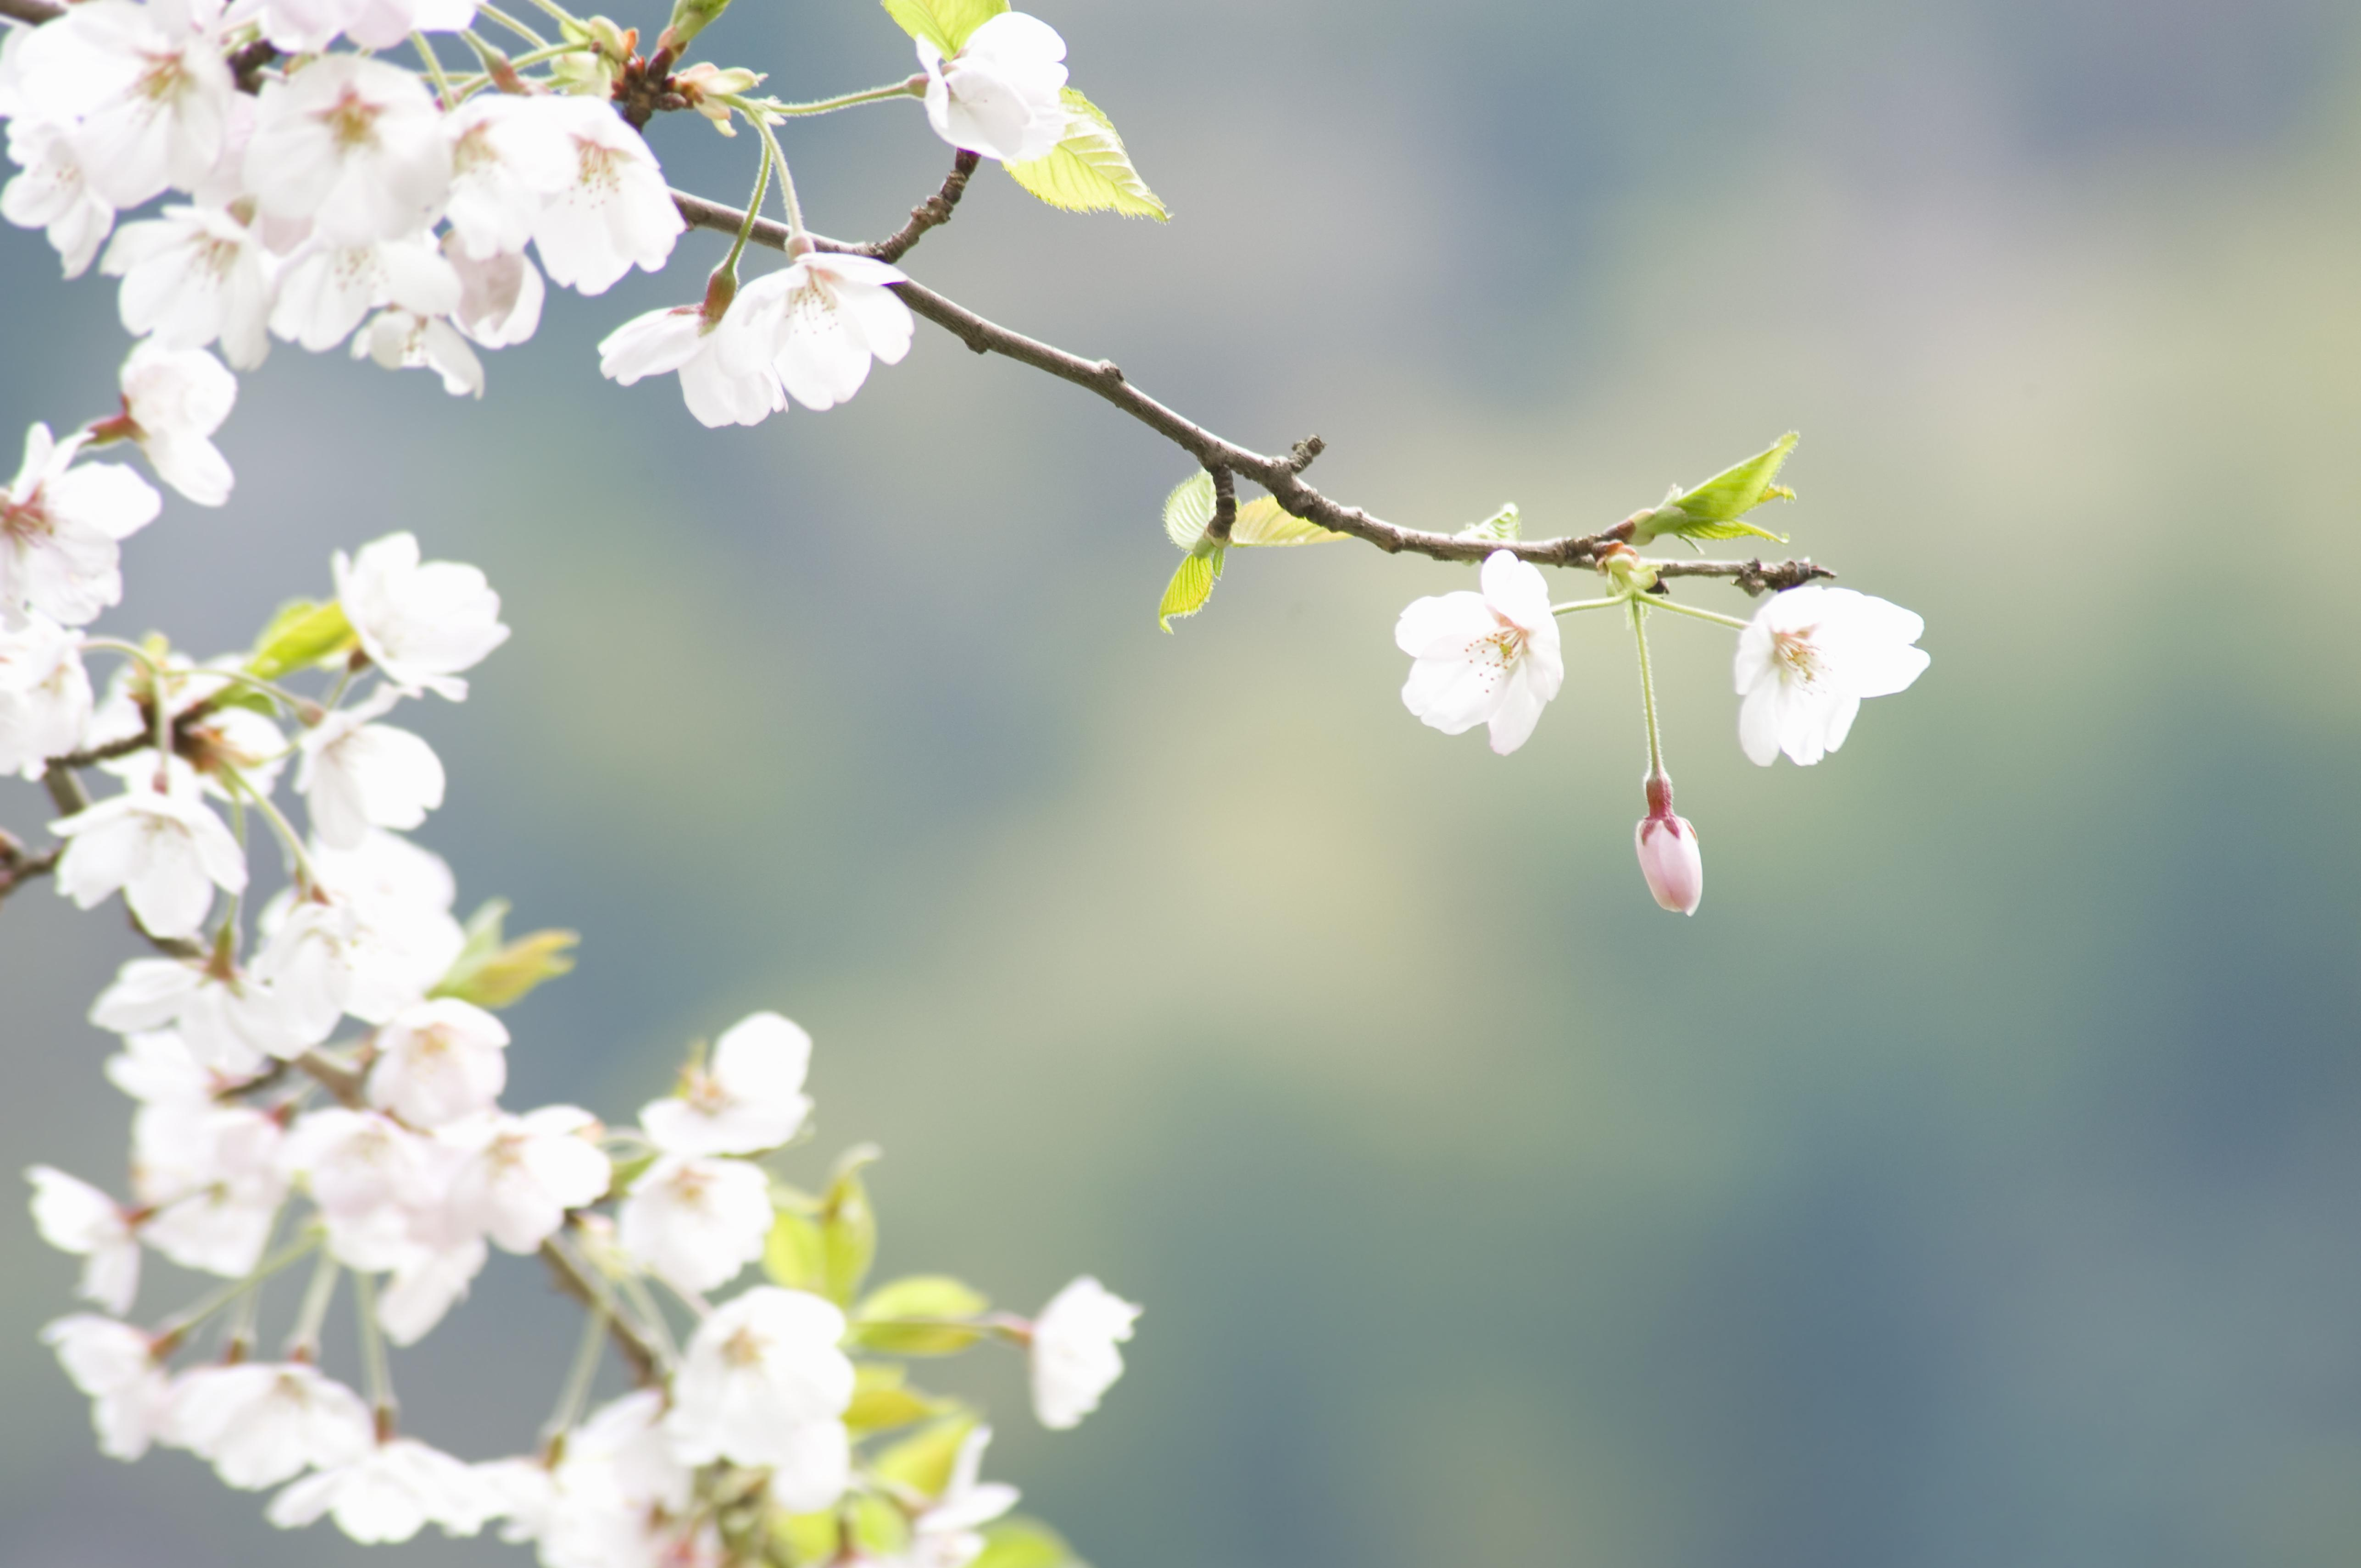 Cherry blossoms on branch